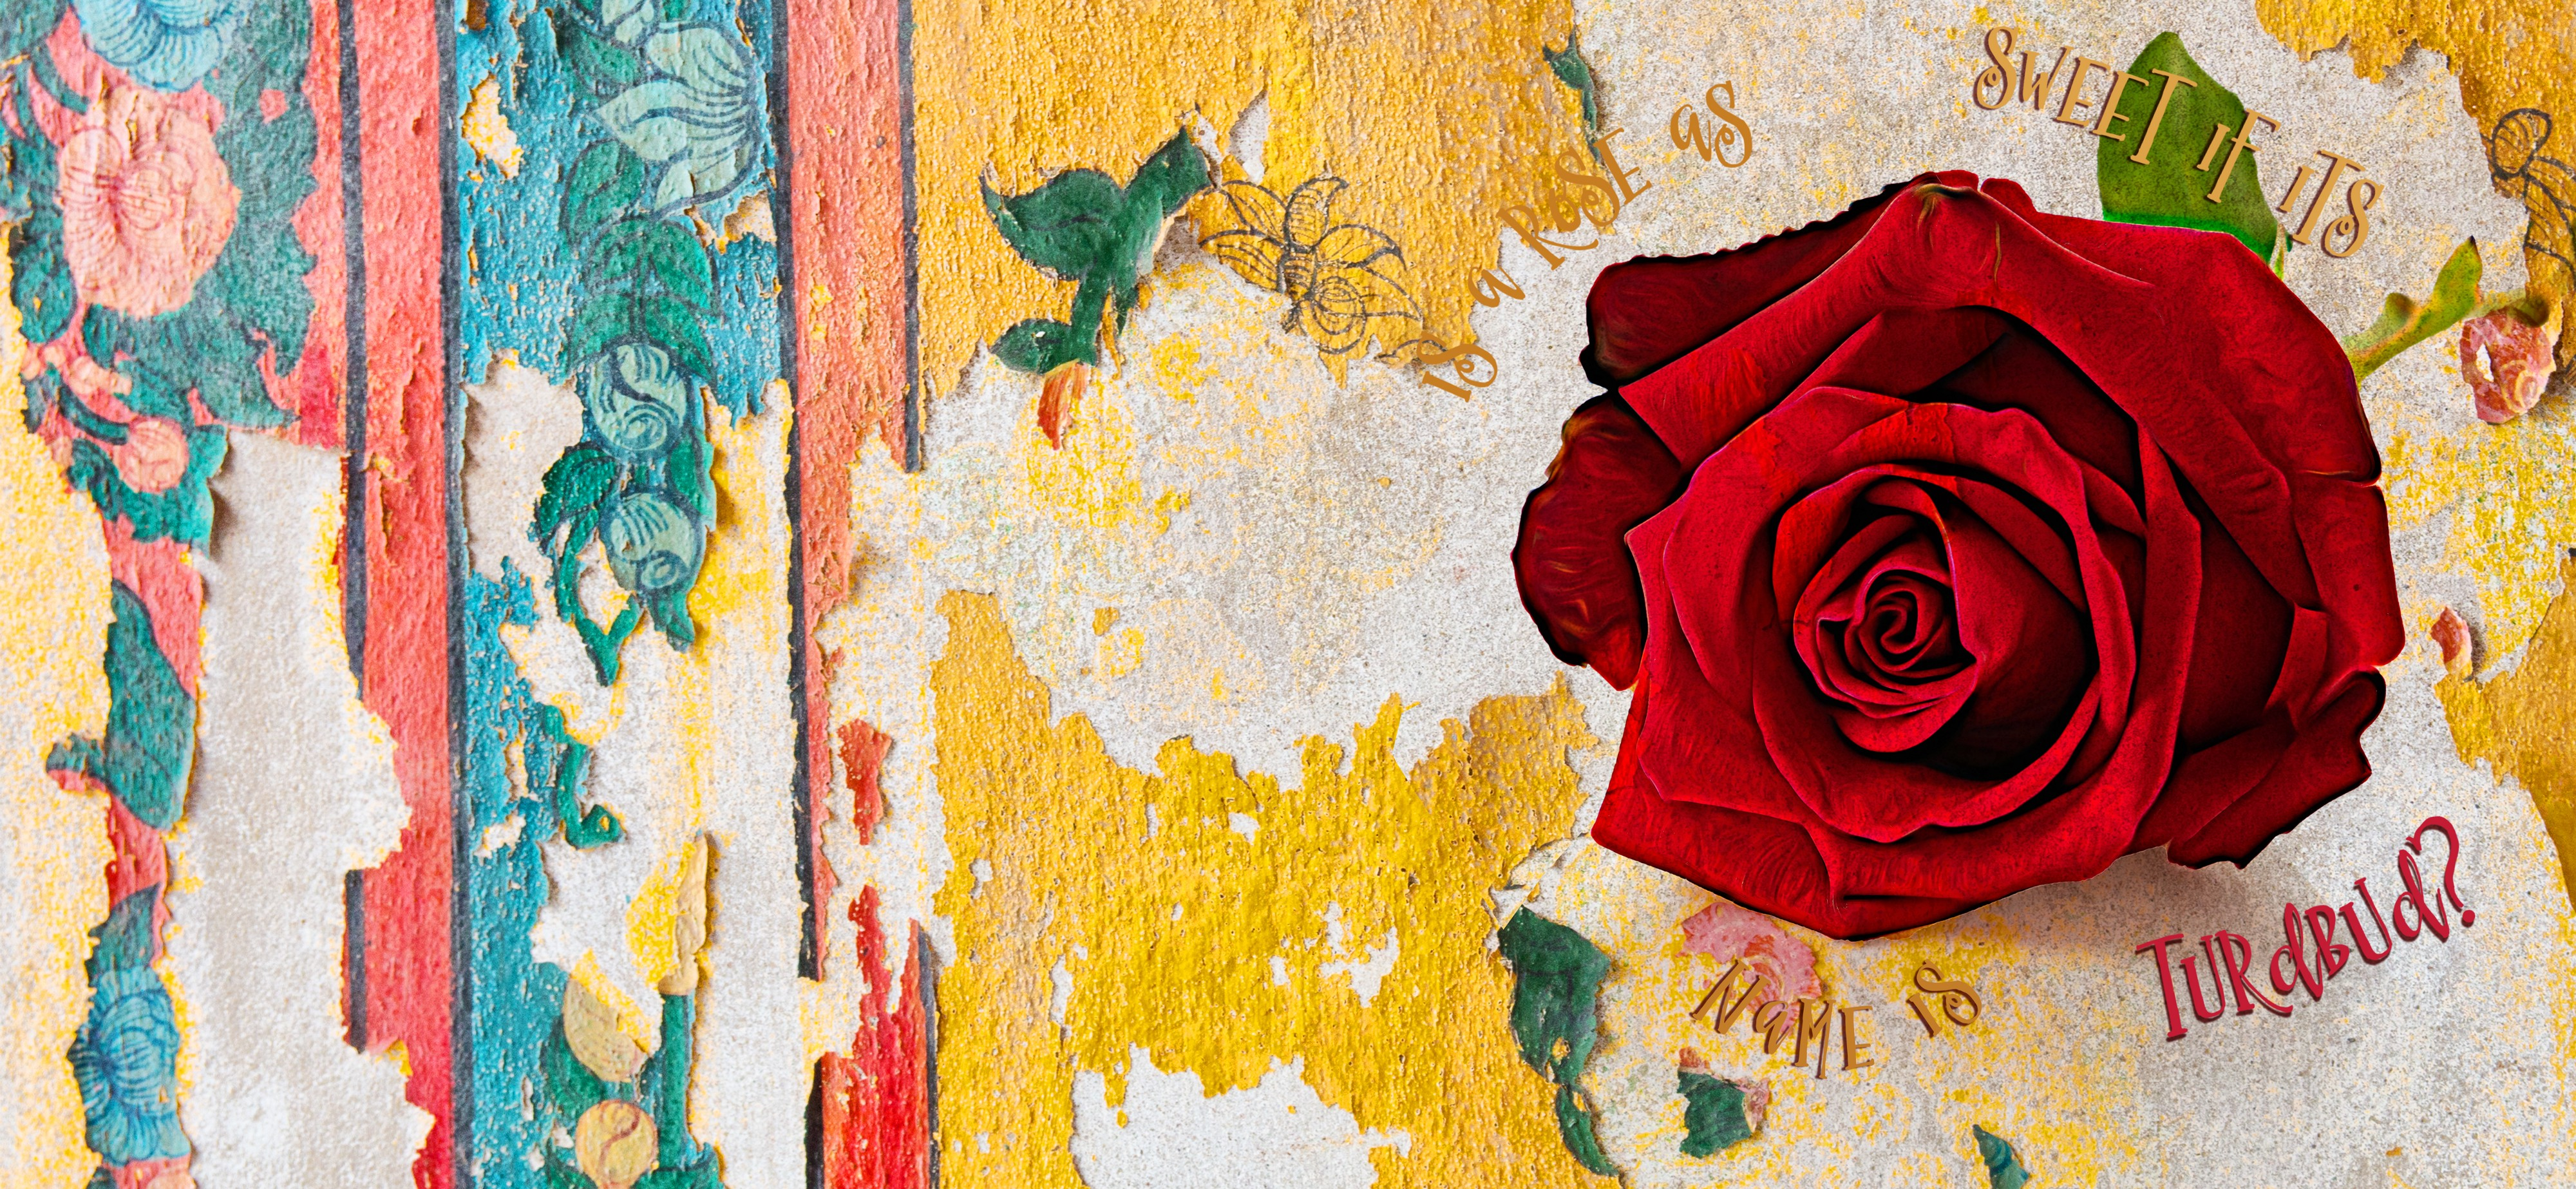 Rose painted over a peeling wall mural